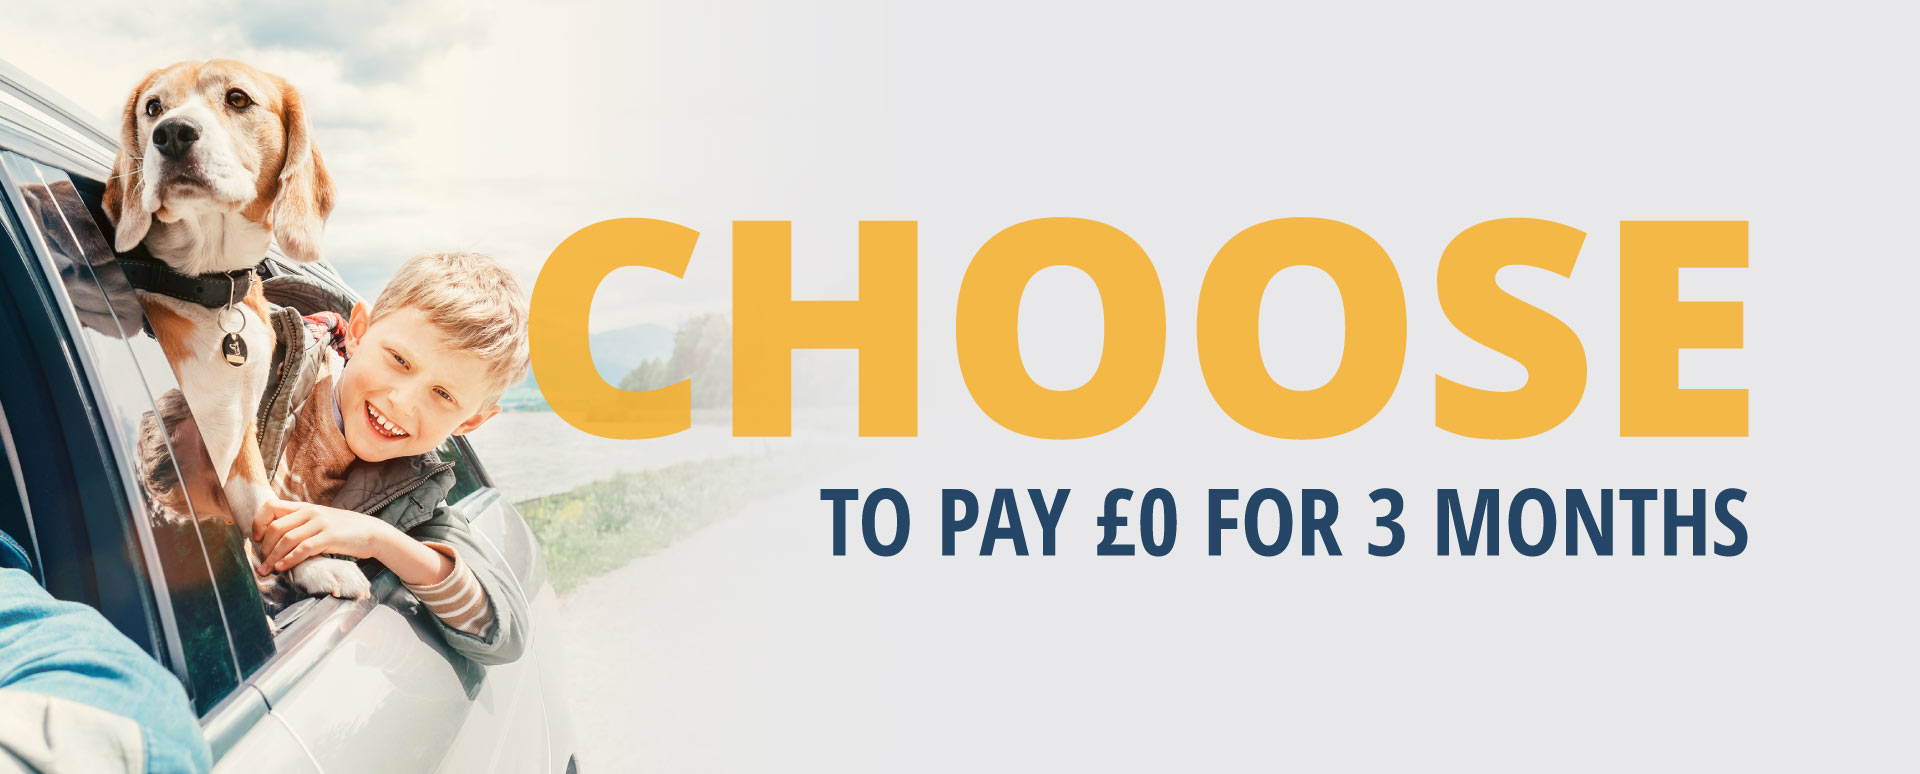 Choose To Pay £0 for 3 Months